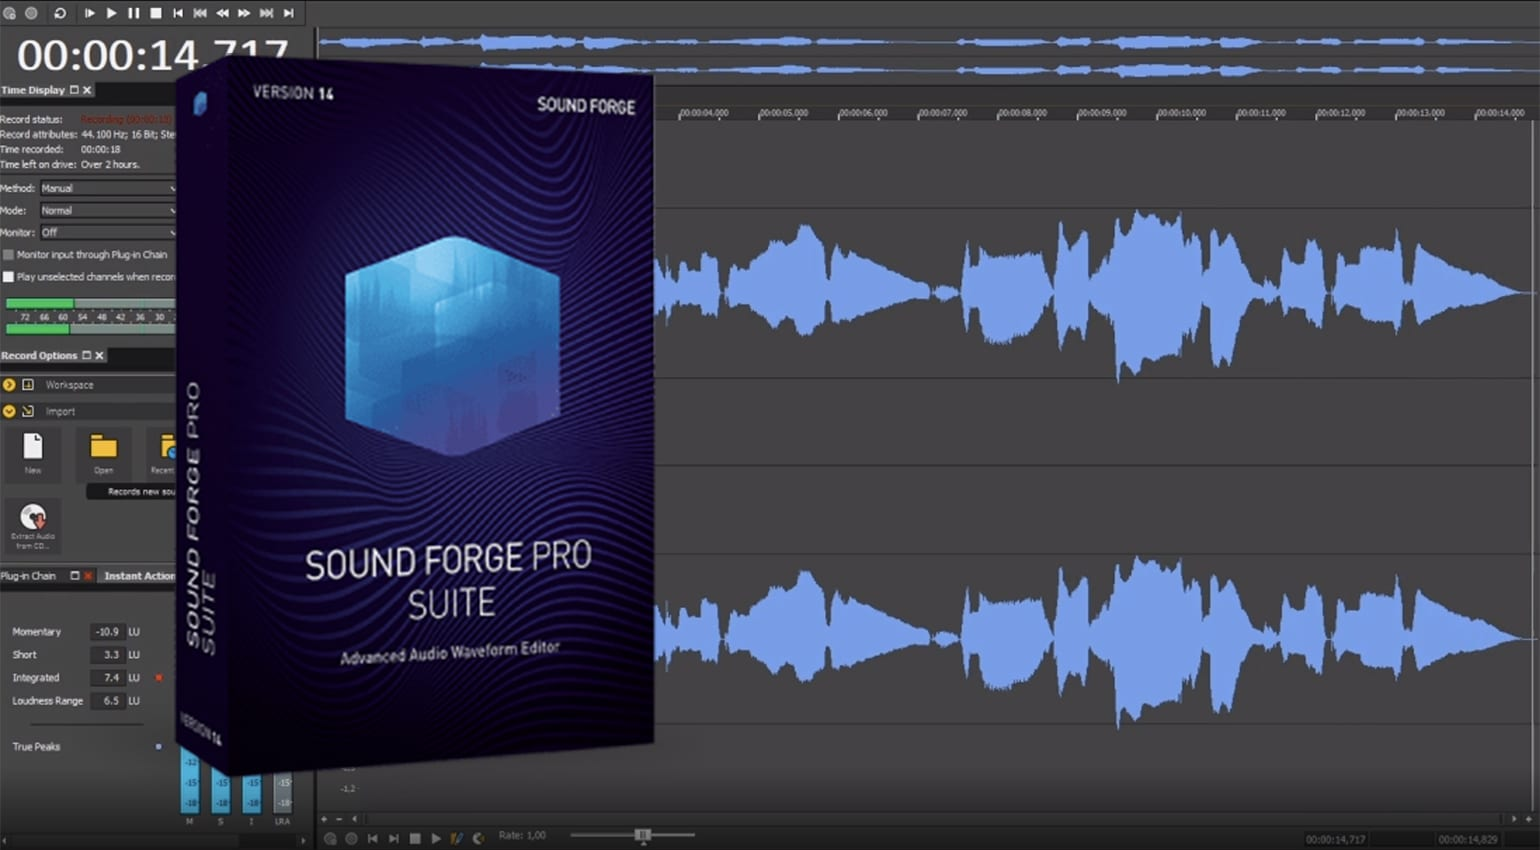 MAGIX SOUND FORGE Audio Studio 14.0.0.111 Crack 100% Working